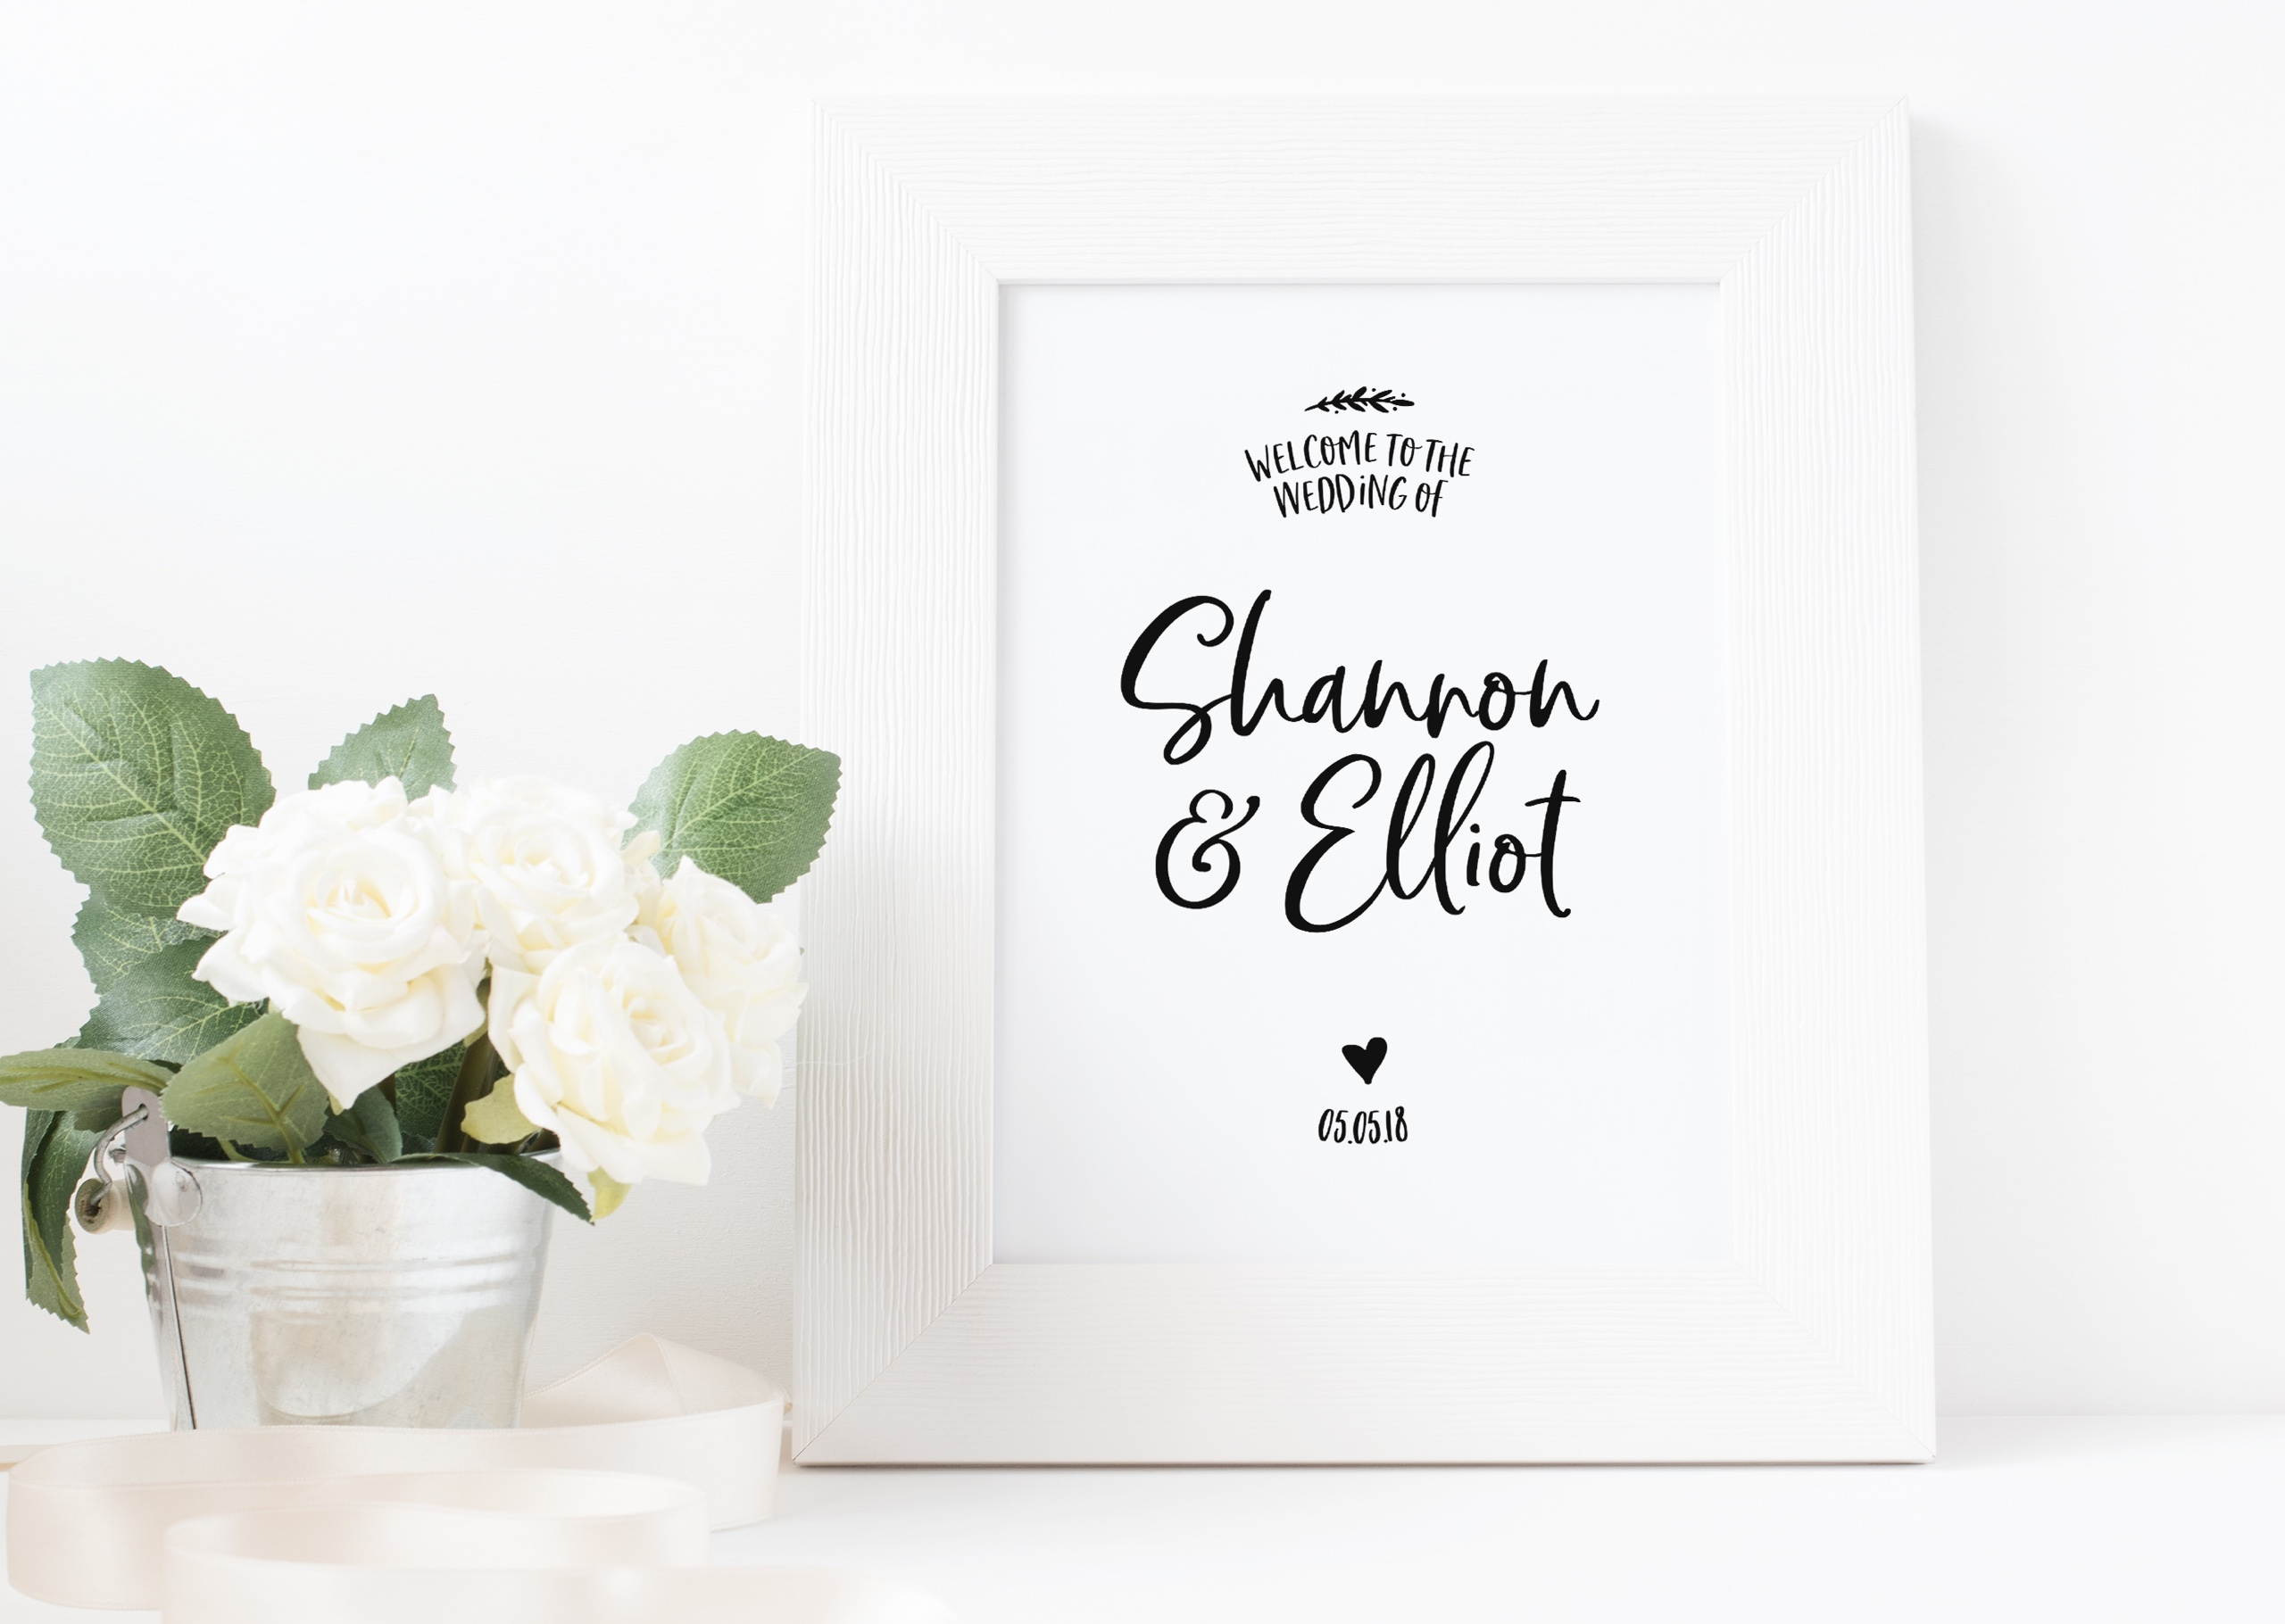 Bespoke wedding welcome sign design for Shannon and Elliot